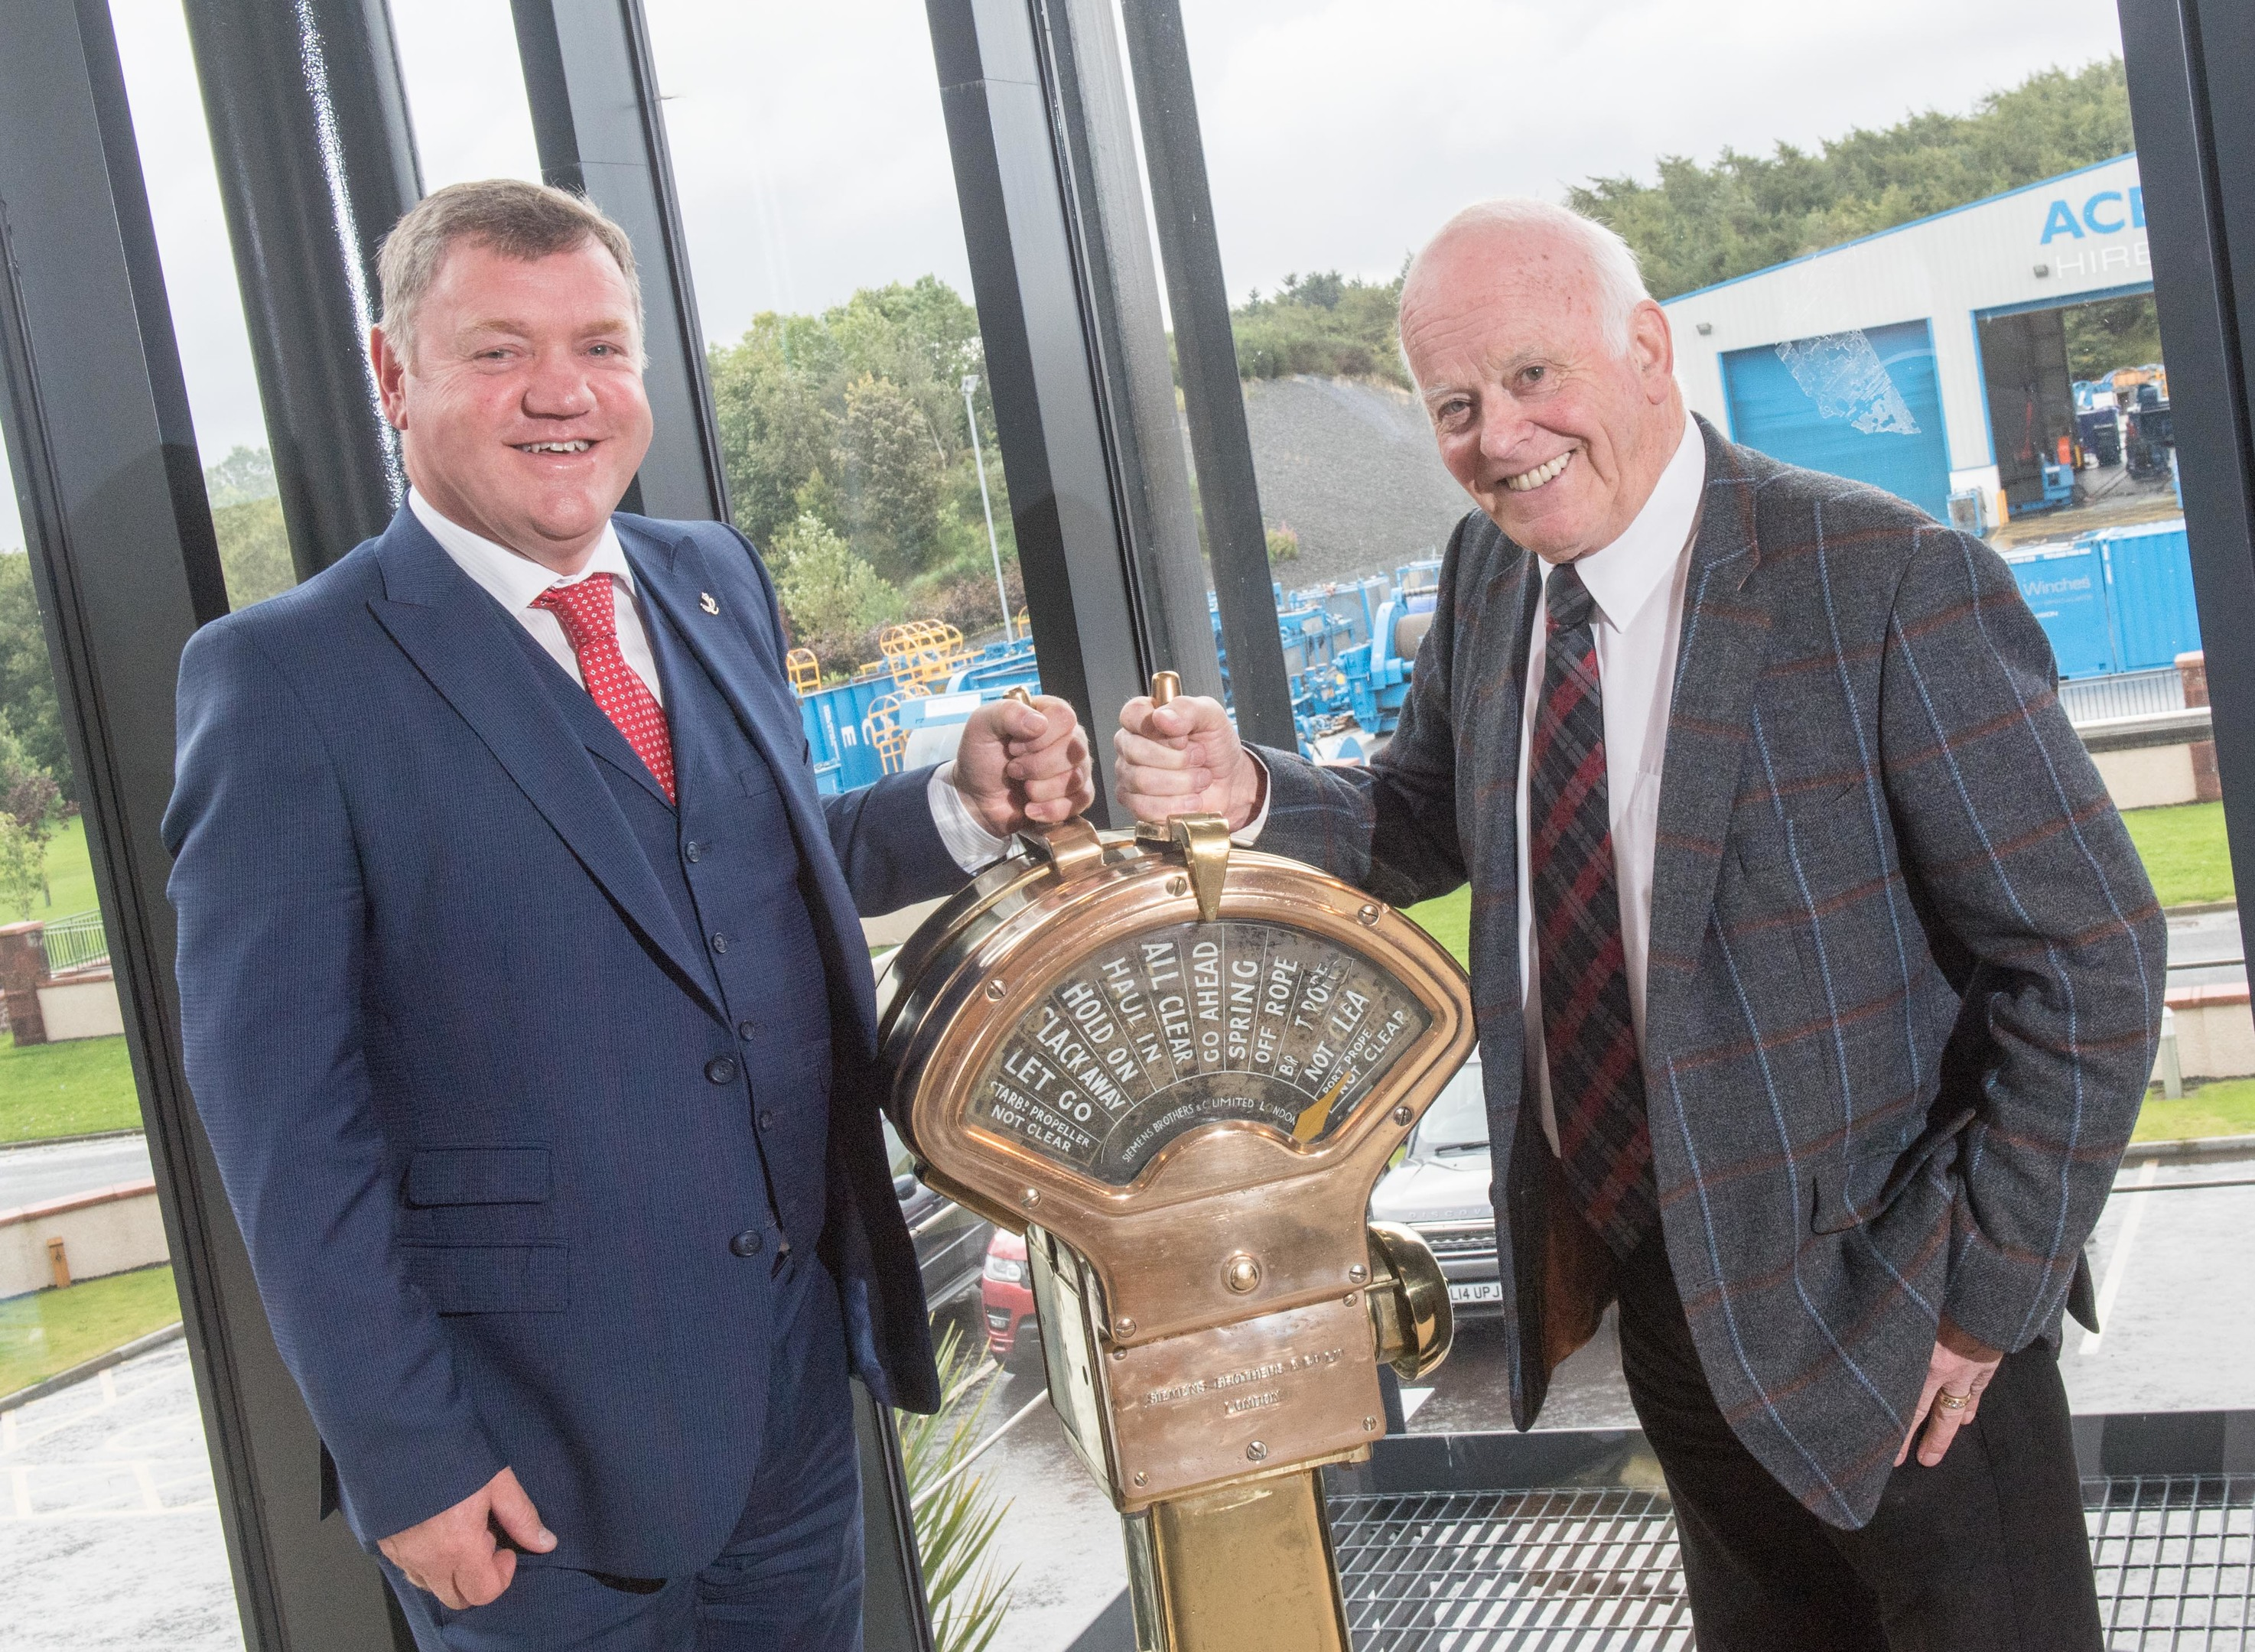 Pictured is (l to r):  Alfie Cheyne, CEO and founder of ACE Winches, Jim Milne, chairman and managing director at Balmoral Group,      Picture by Michal Wachucik / Abermedia